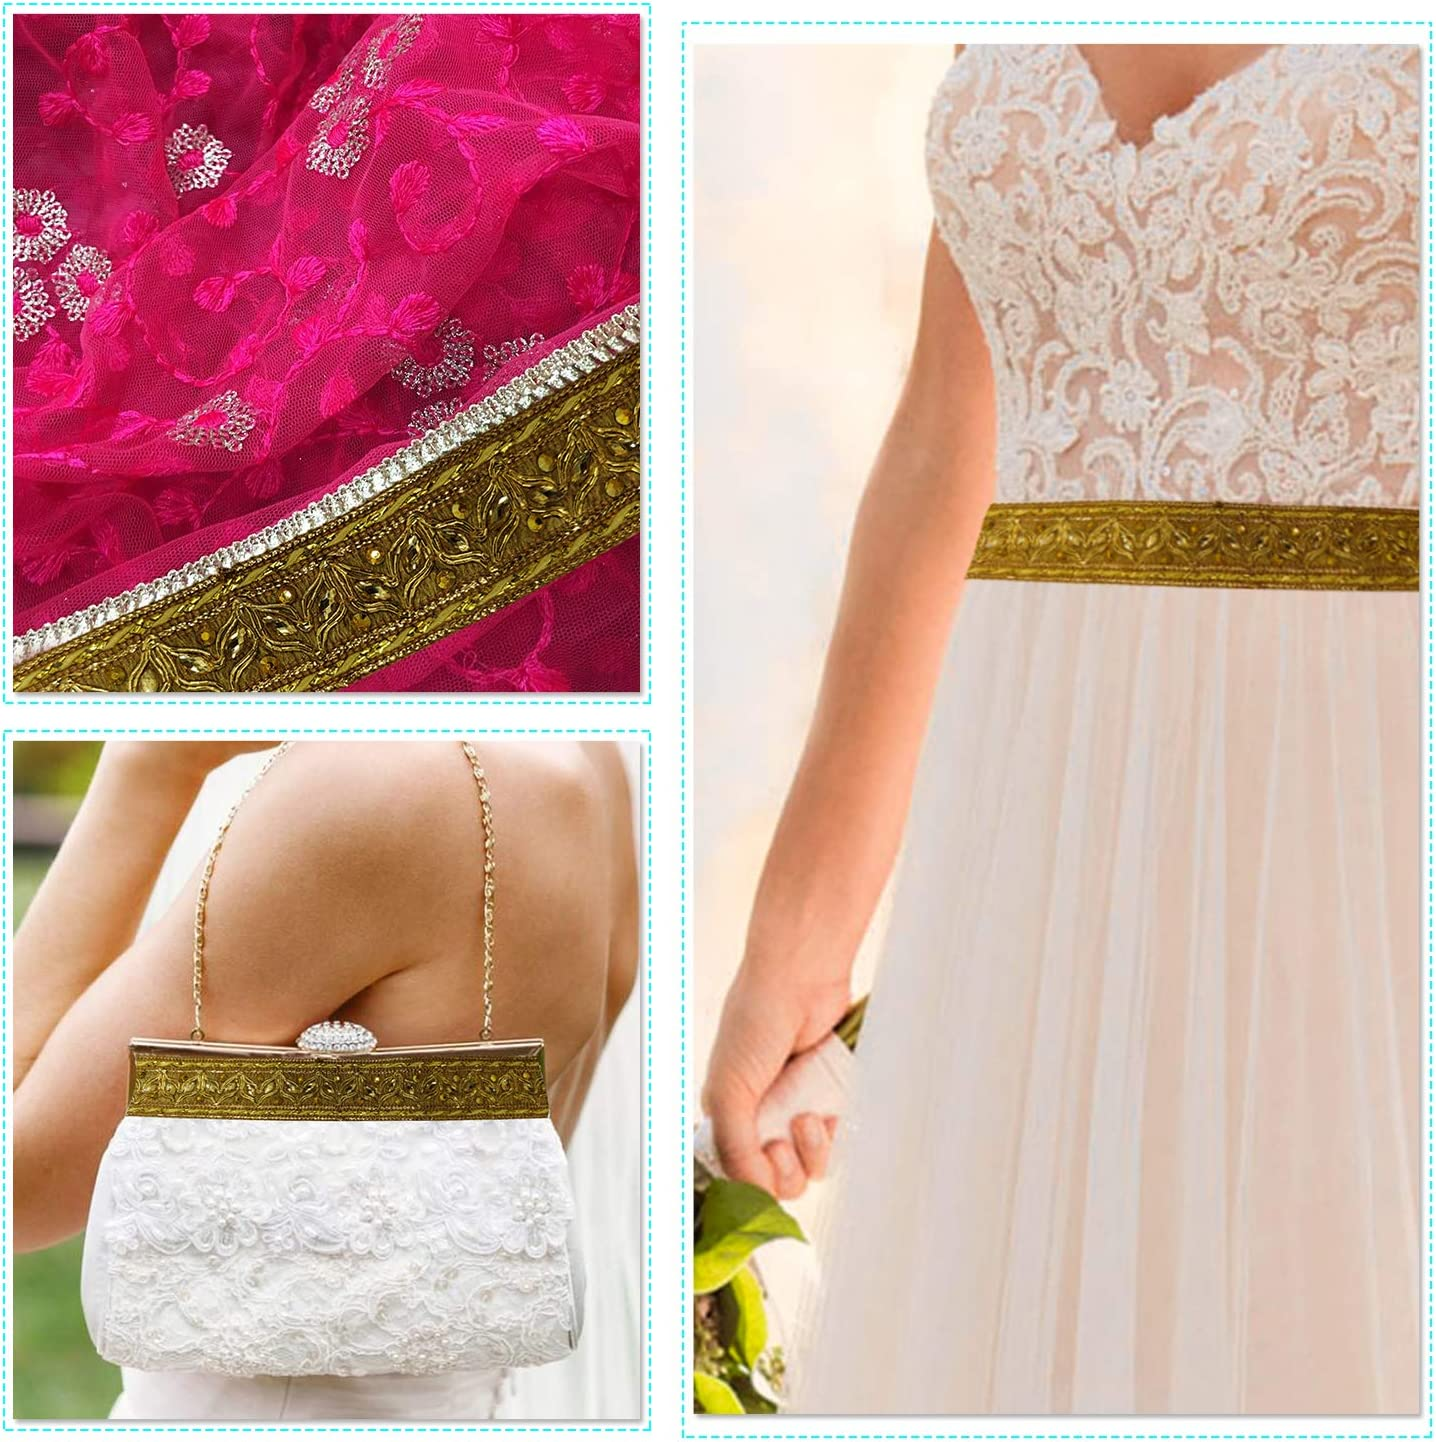 DIY Projects 1 Meter Designer Wear 12mm wide Weddecor Rich Embroidery Trim Embellishing Lace For Wedding Gowns Bronze